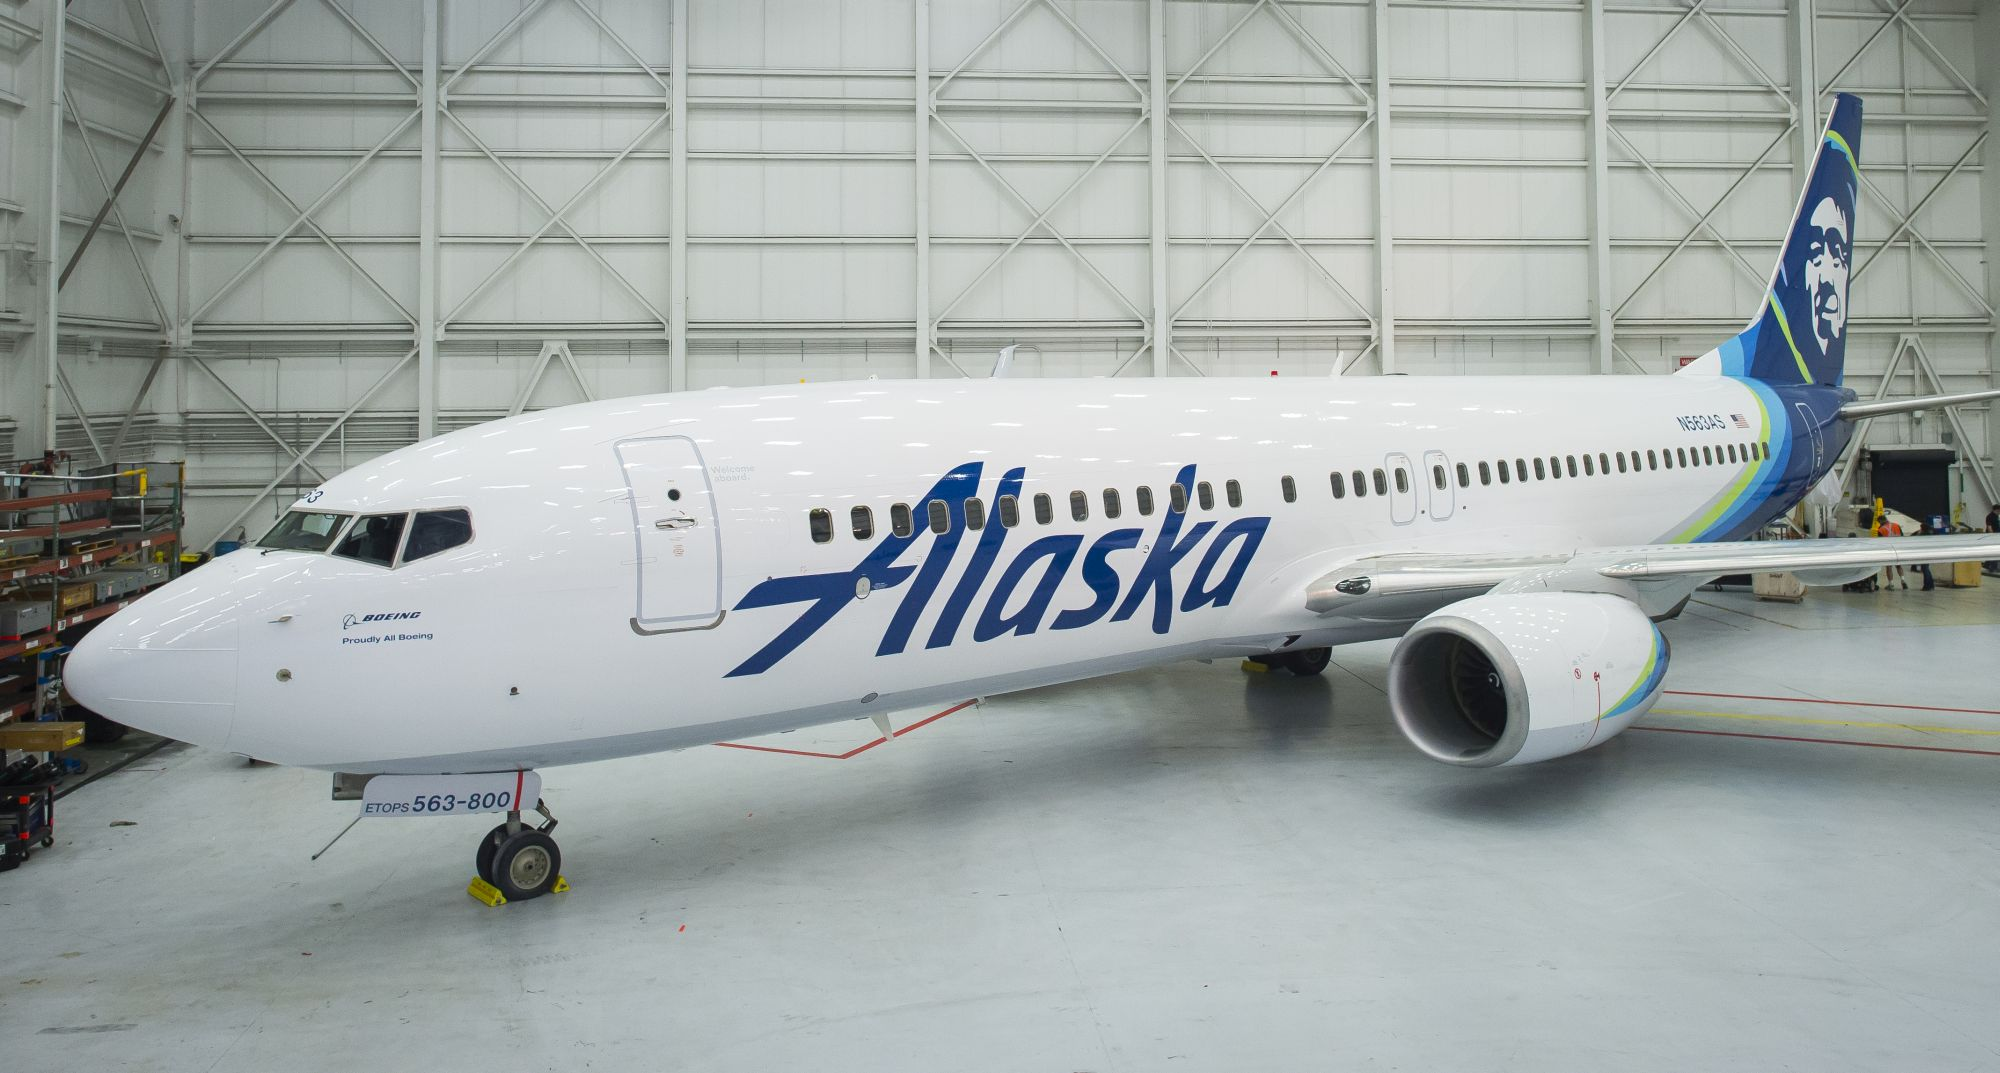 Alaska Airlines Unveils Major Brand Updates in 25 Years